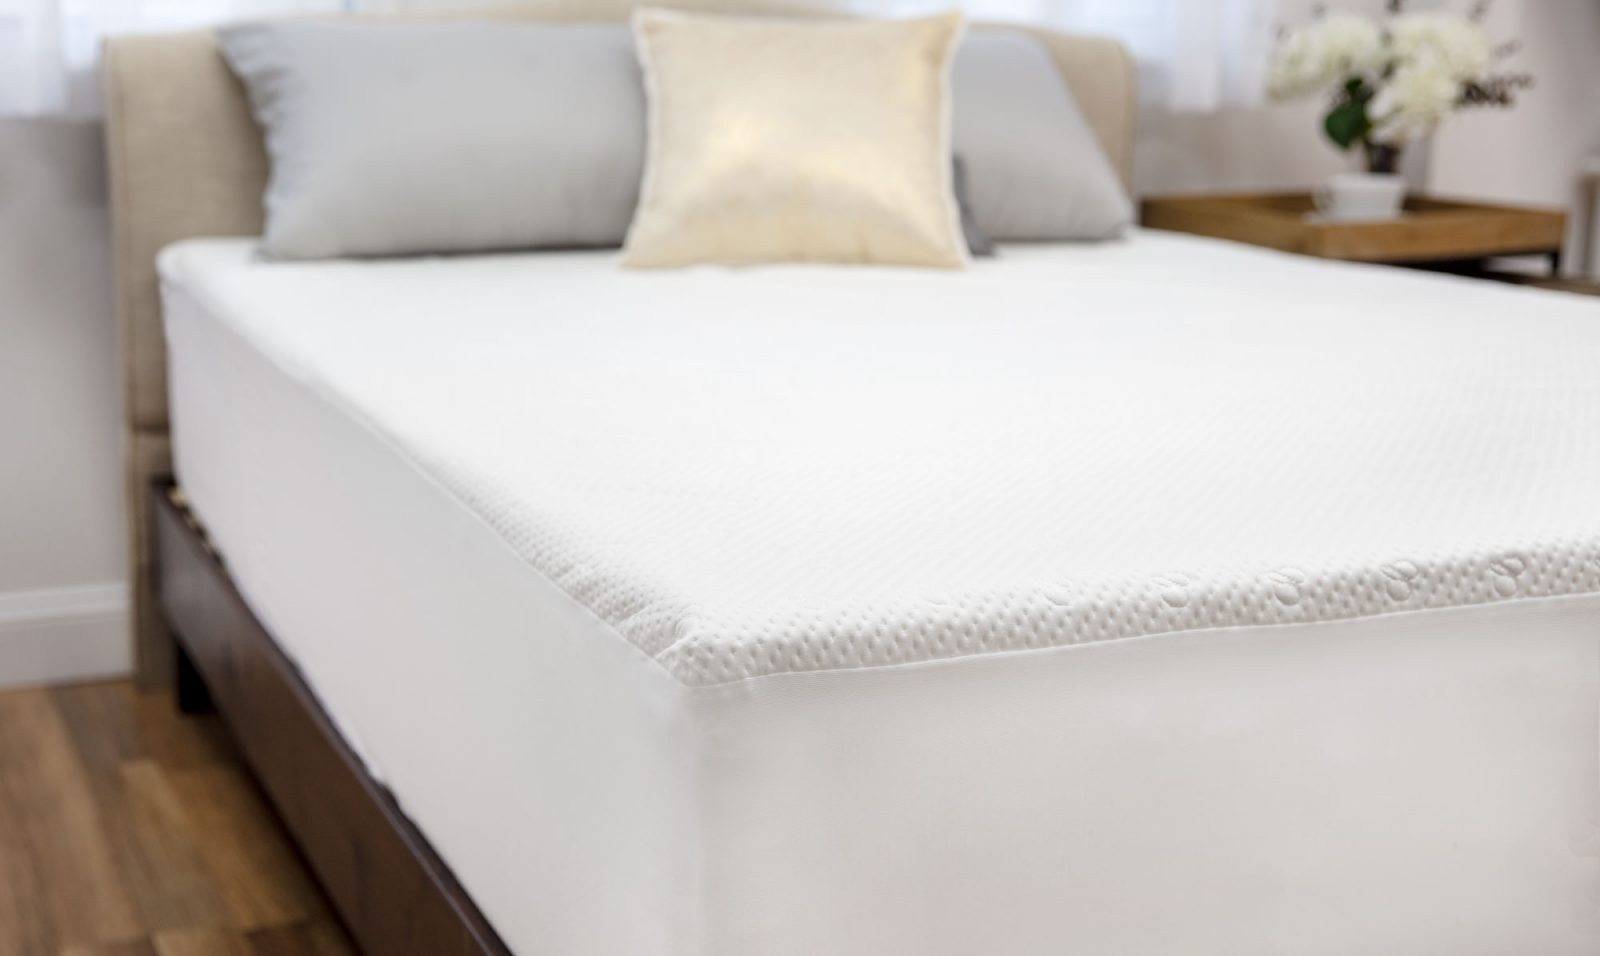 Mattress Protector on a bed